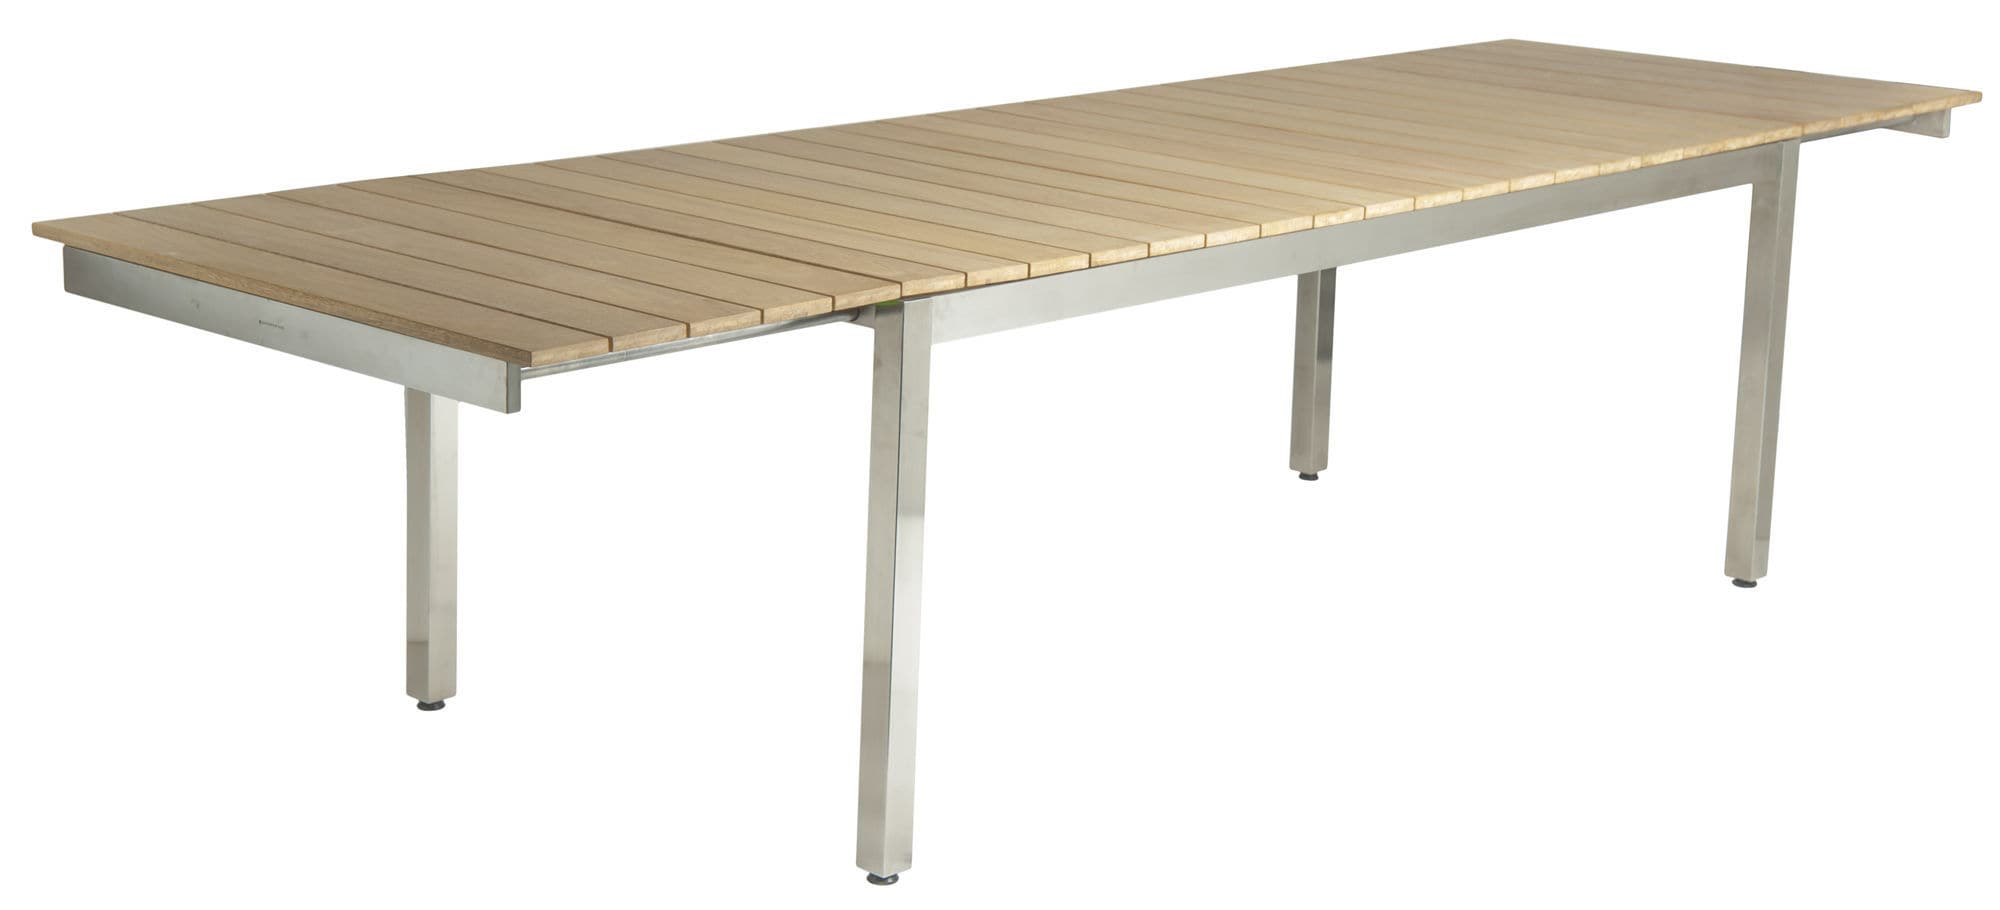 Stainless Steel Outdoor Dining Table Dining Table Contemporary Wooden Stainless Steel Cologne